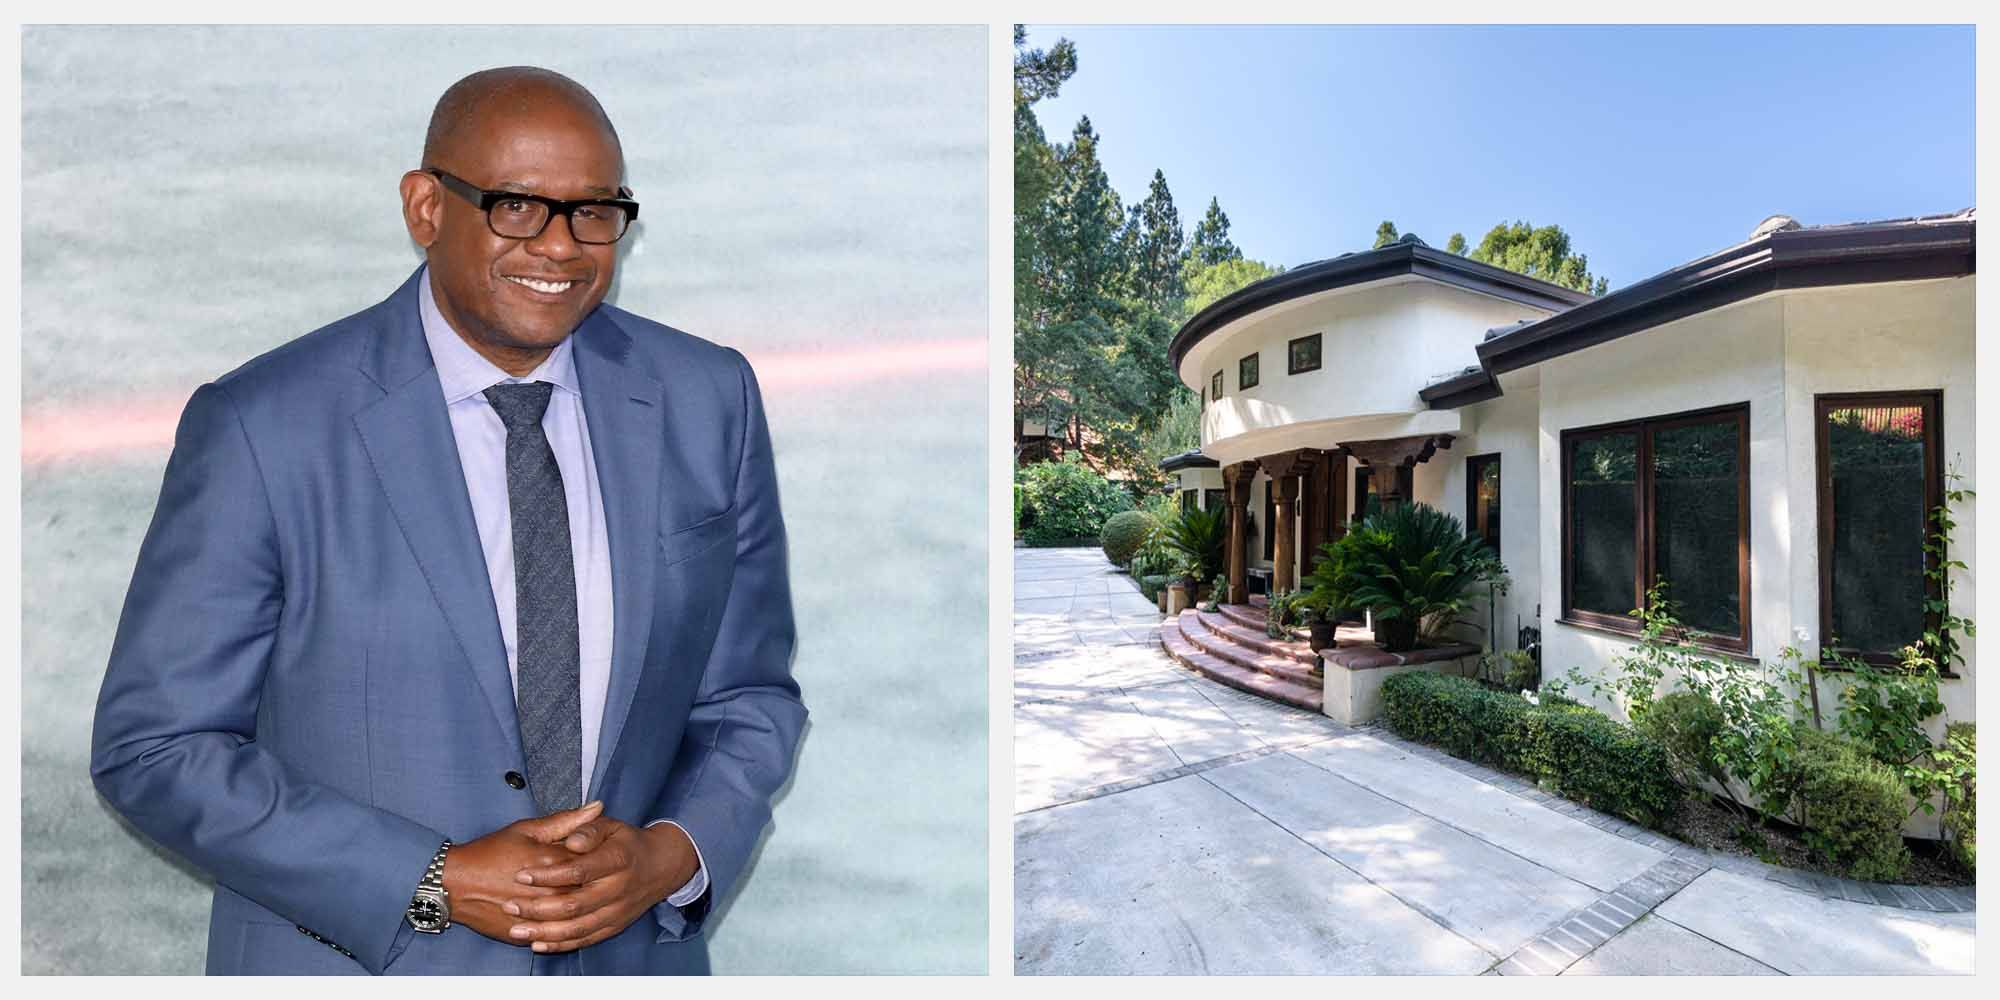 Forest Whitaker's Hollywood Hills Compound is on Sale for $4.3 Million